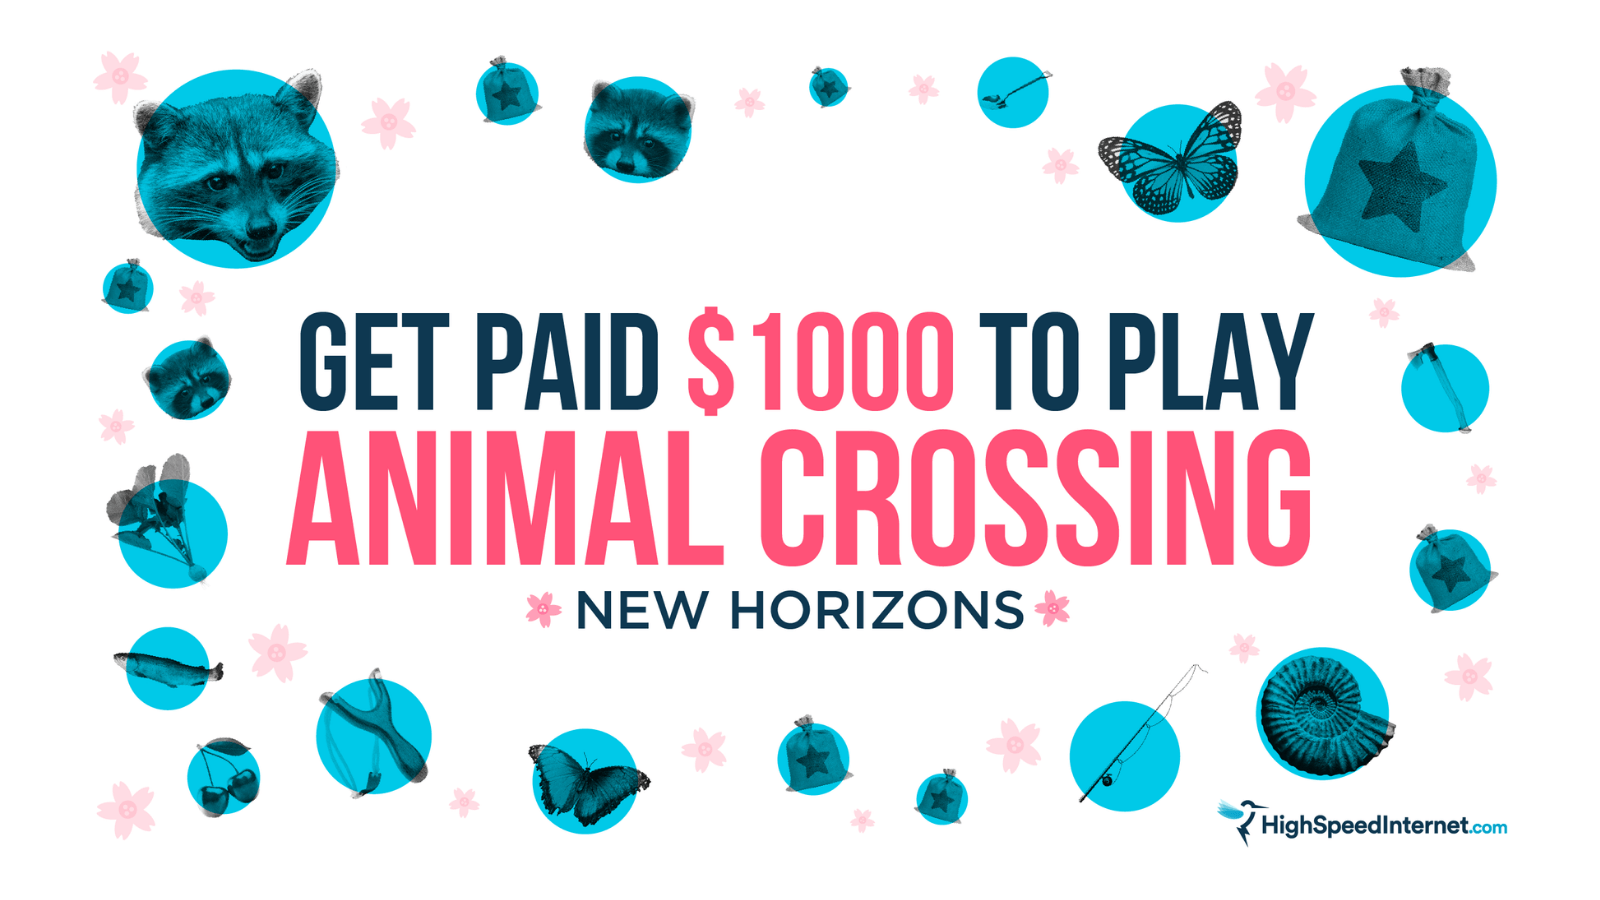 Get paid $1000 to play Animal Crossing